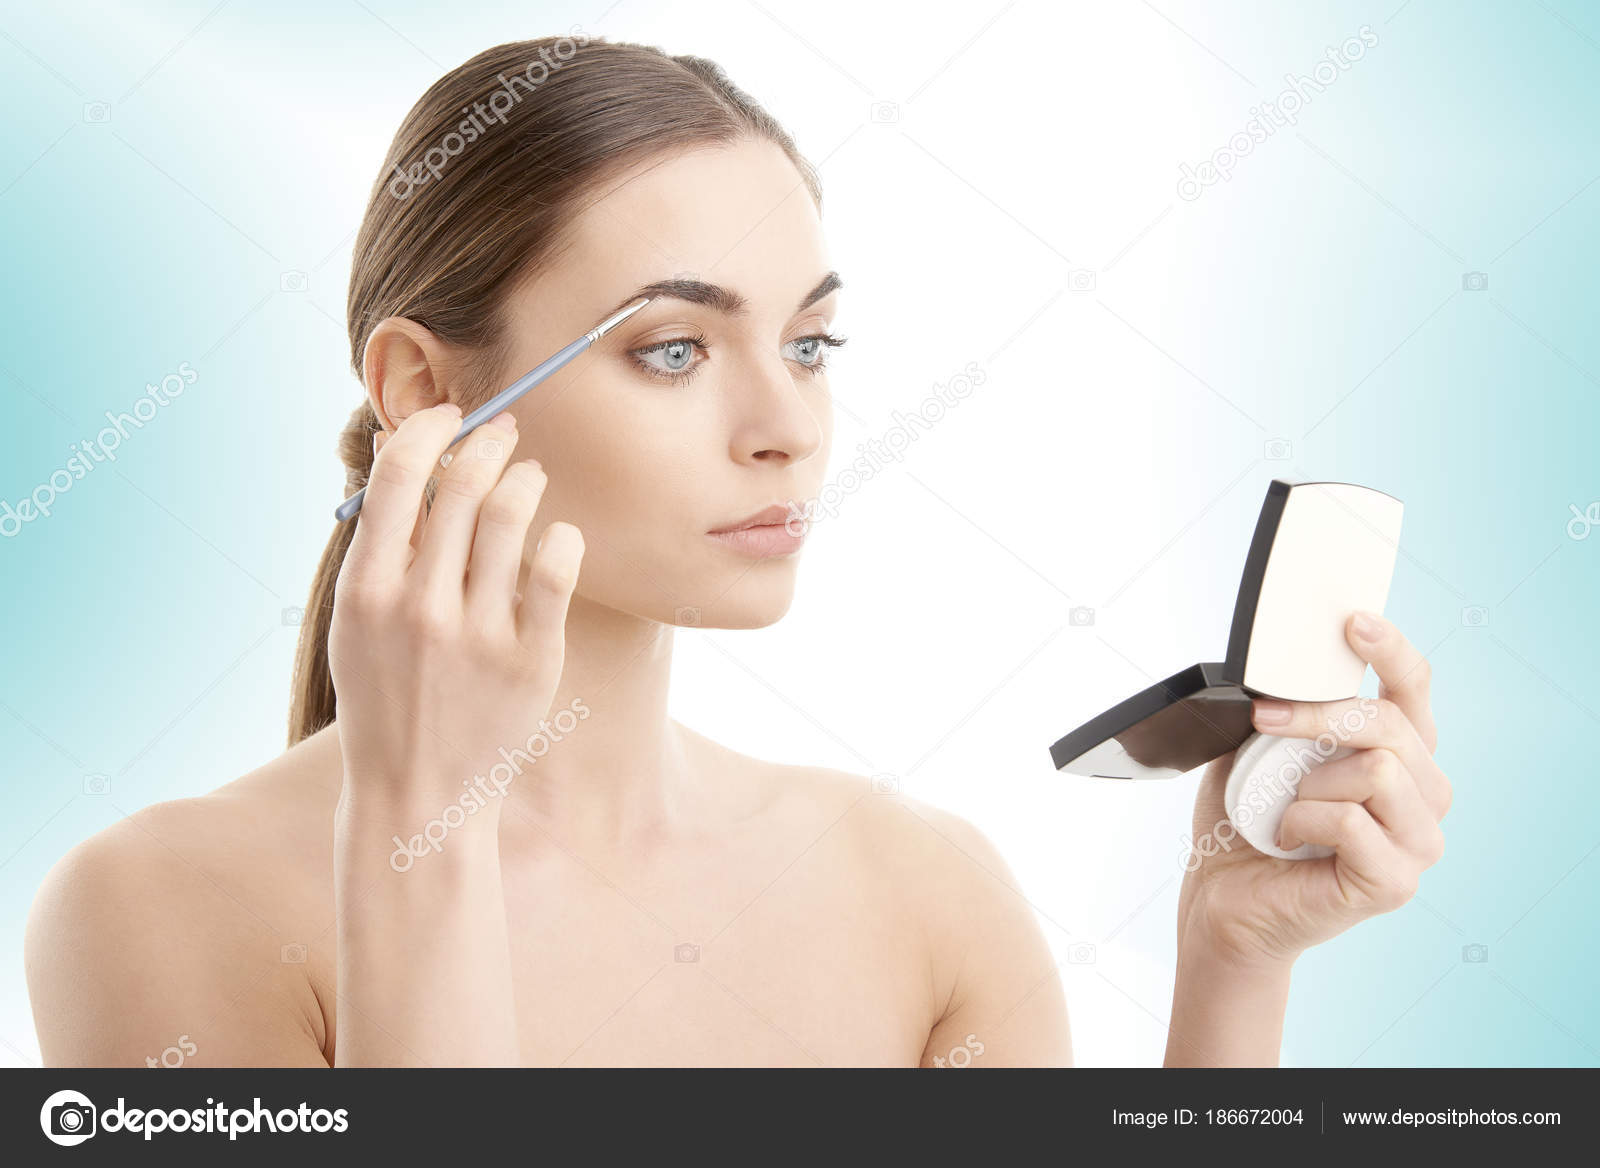 woman holding hand mirror. Studio Shot Of A Beautiful Young Woman Applying Makeup To Her Eyebrow And Holding Hand Mirror In While Standing At Isolated Light Blue Background. G